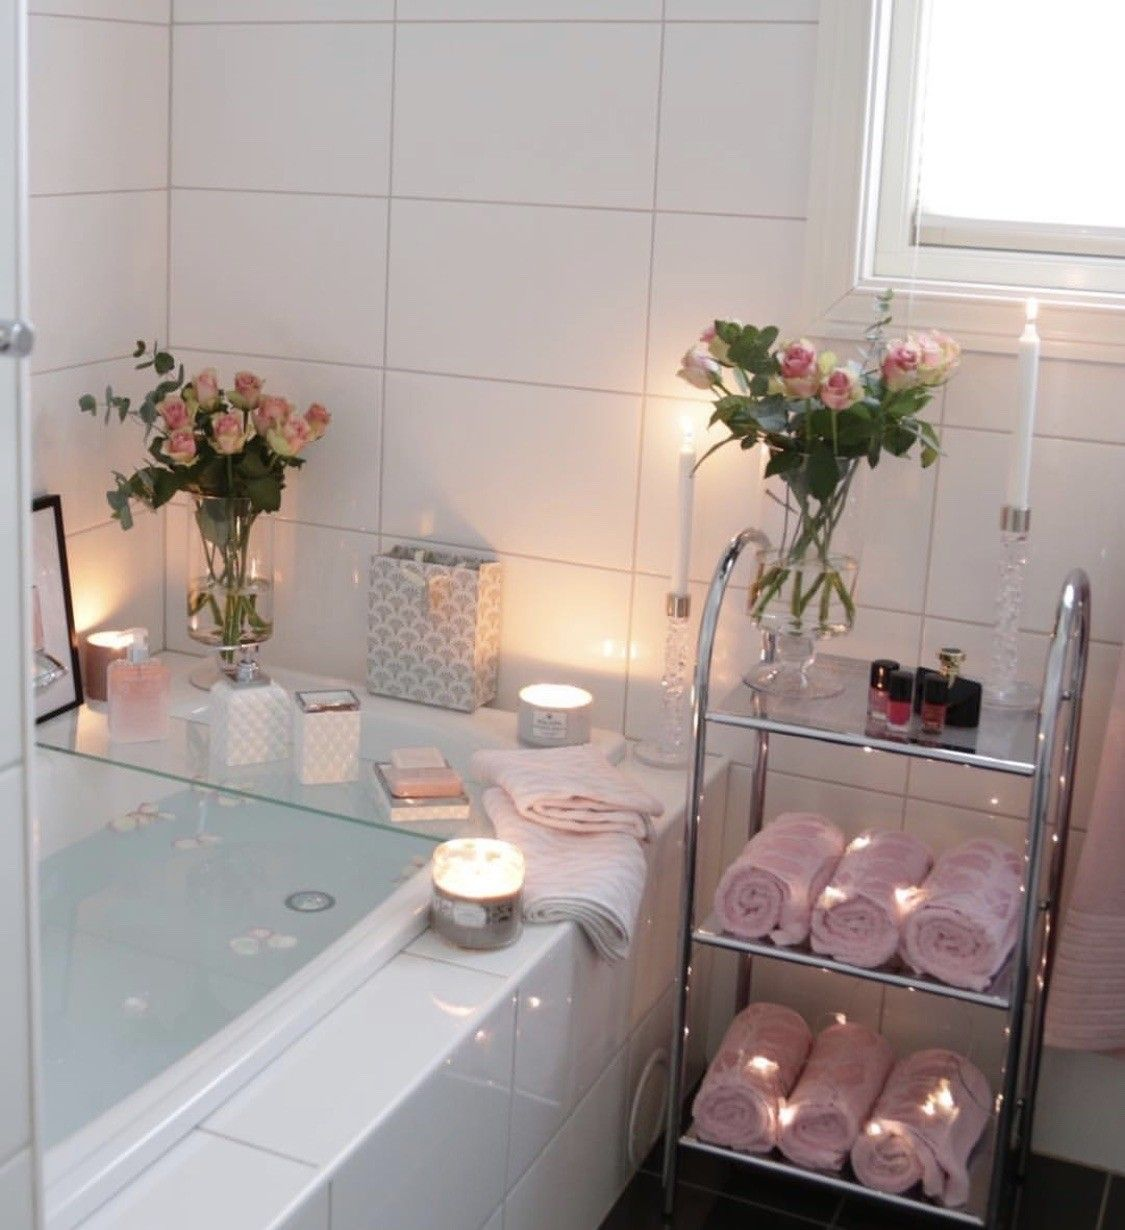 Badroom🛁 shared by 💥DANCING STAR💥💃 on We Heart It